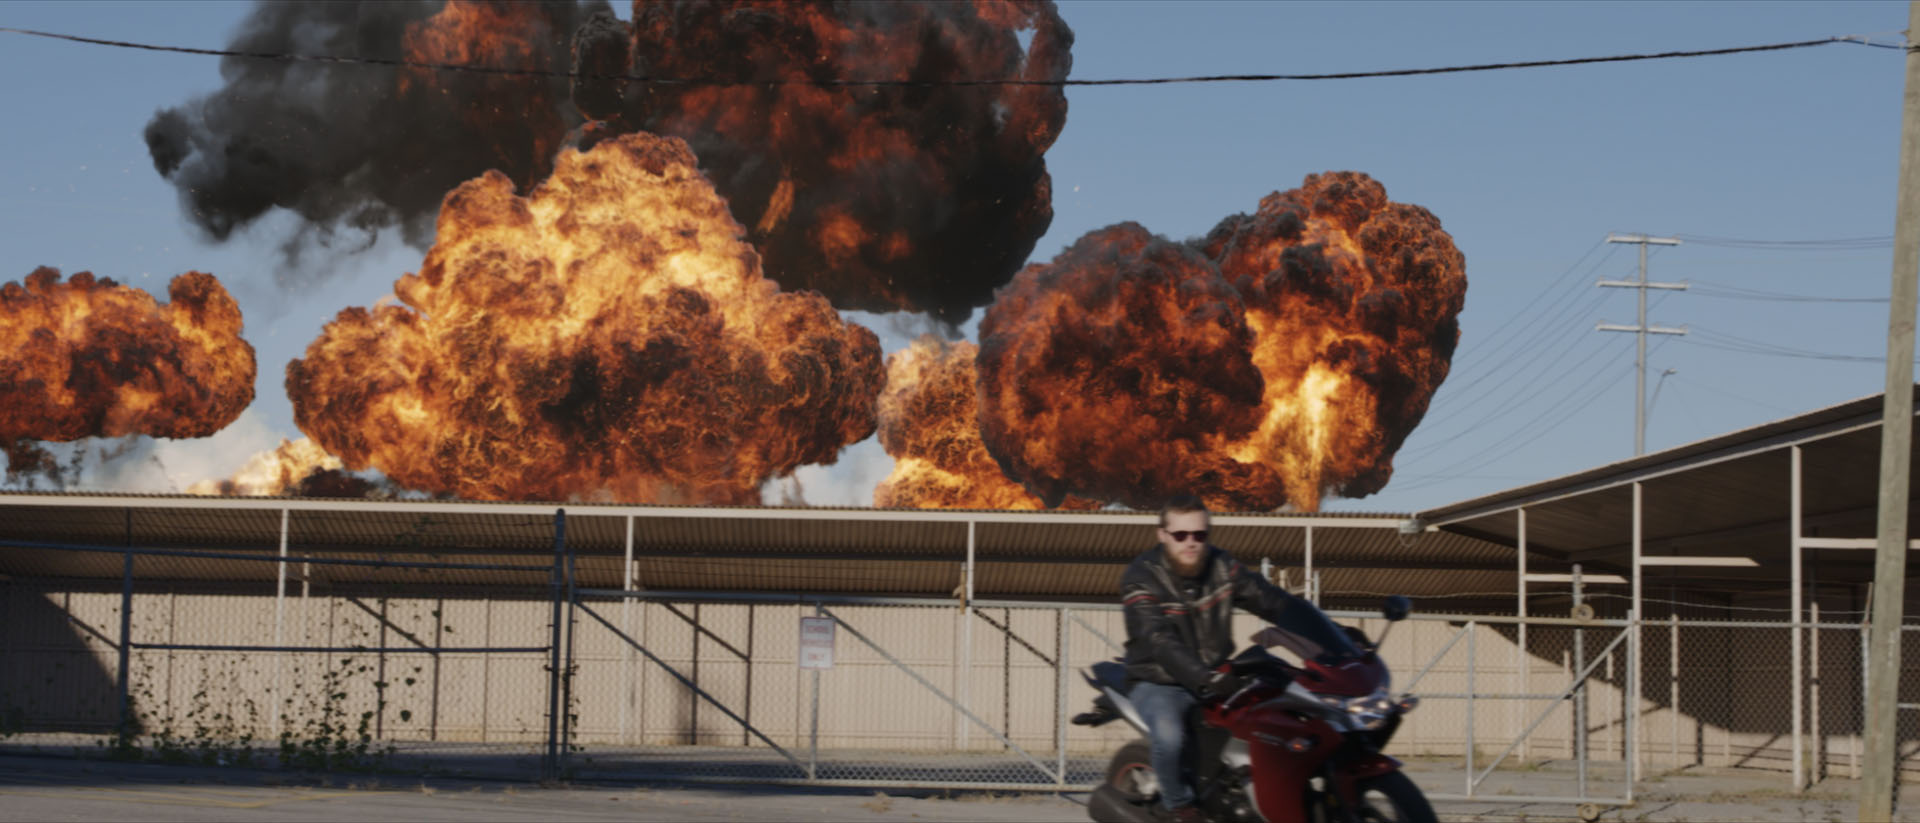 Tutorial compositing large scale explosions